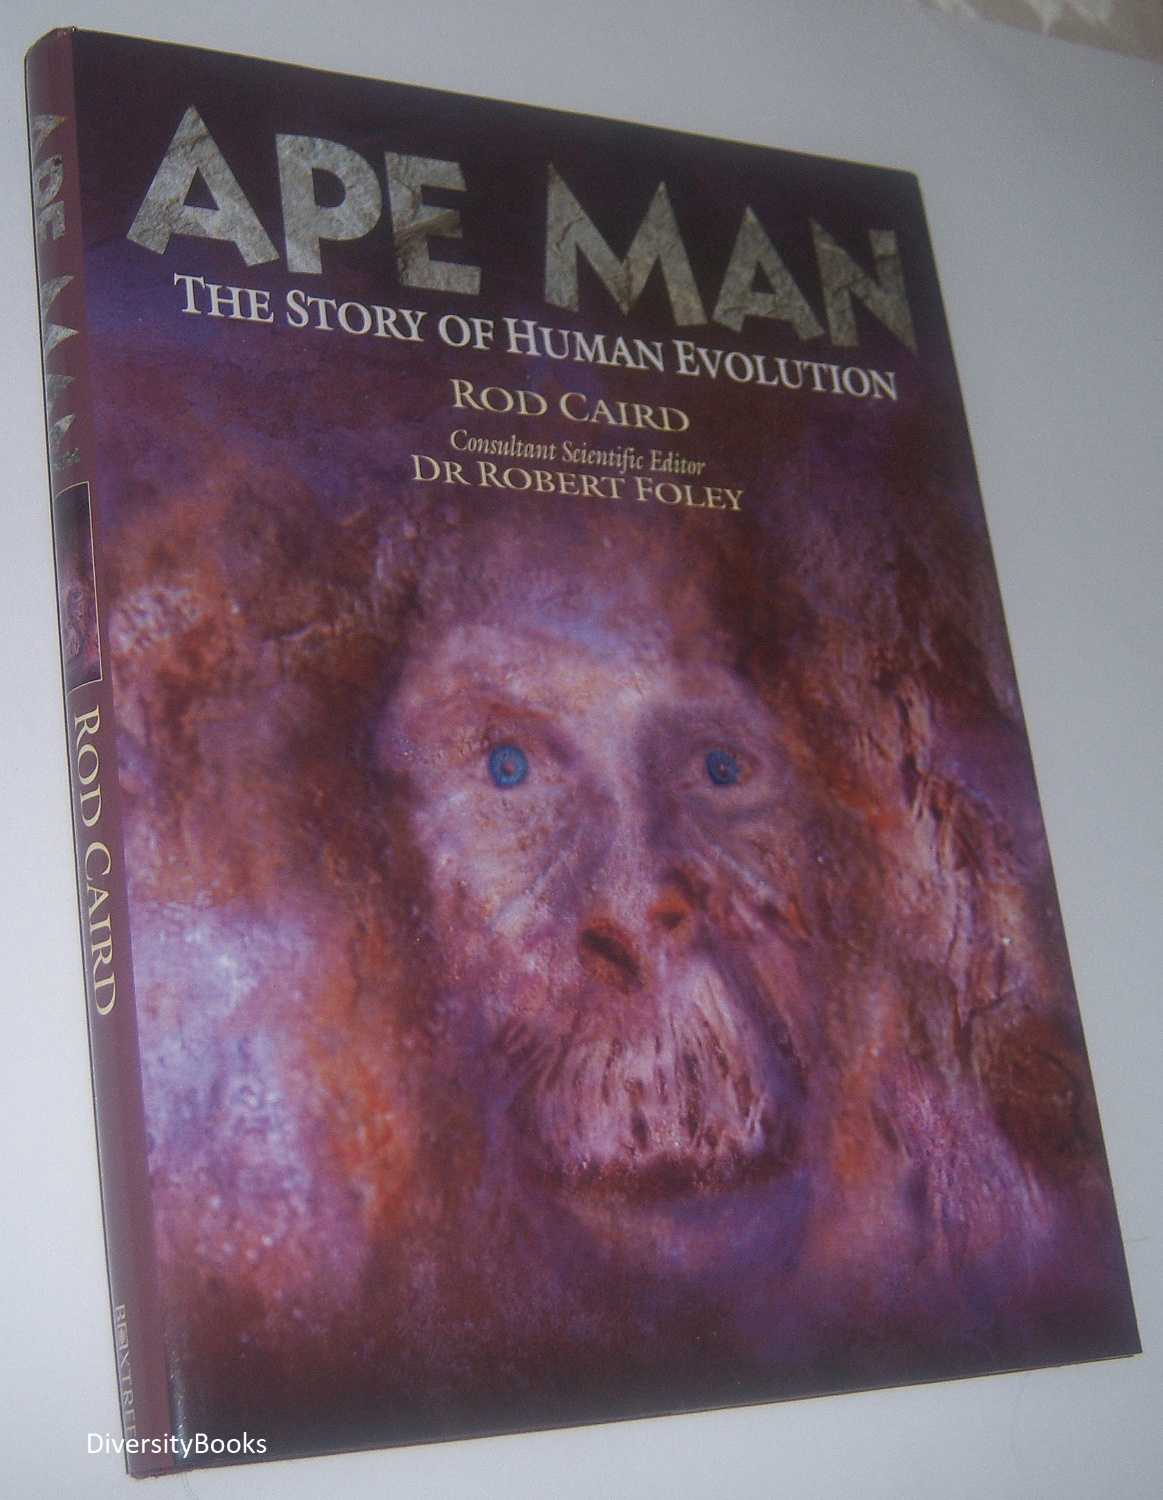 Image for APE MAN: The Story of Human Evolution